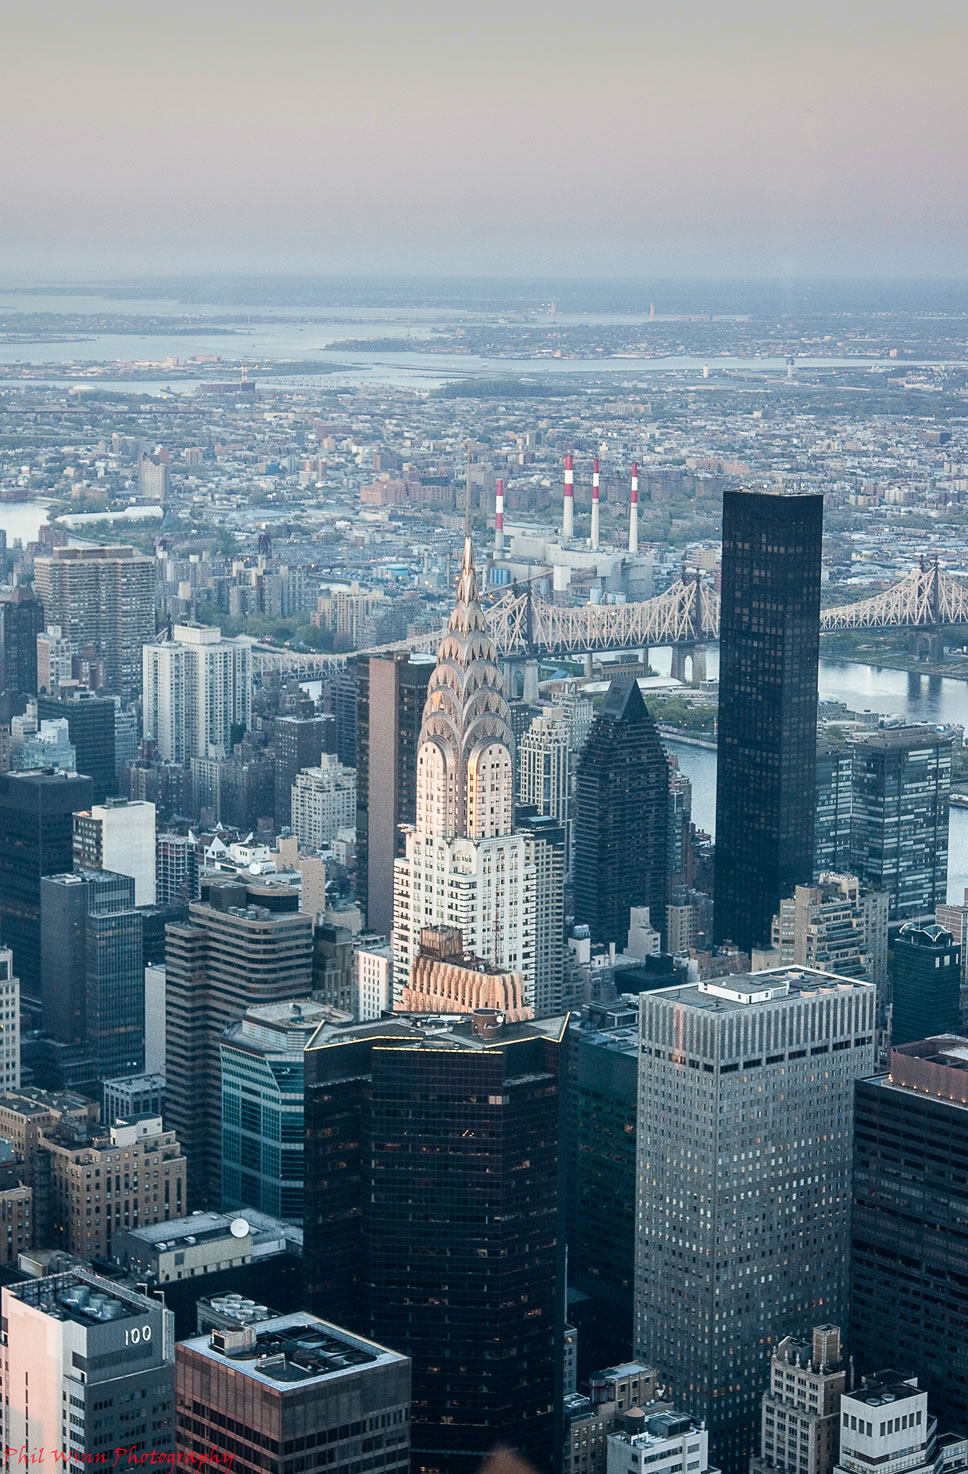 Skyscape view of the Chrysler Building in New York